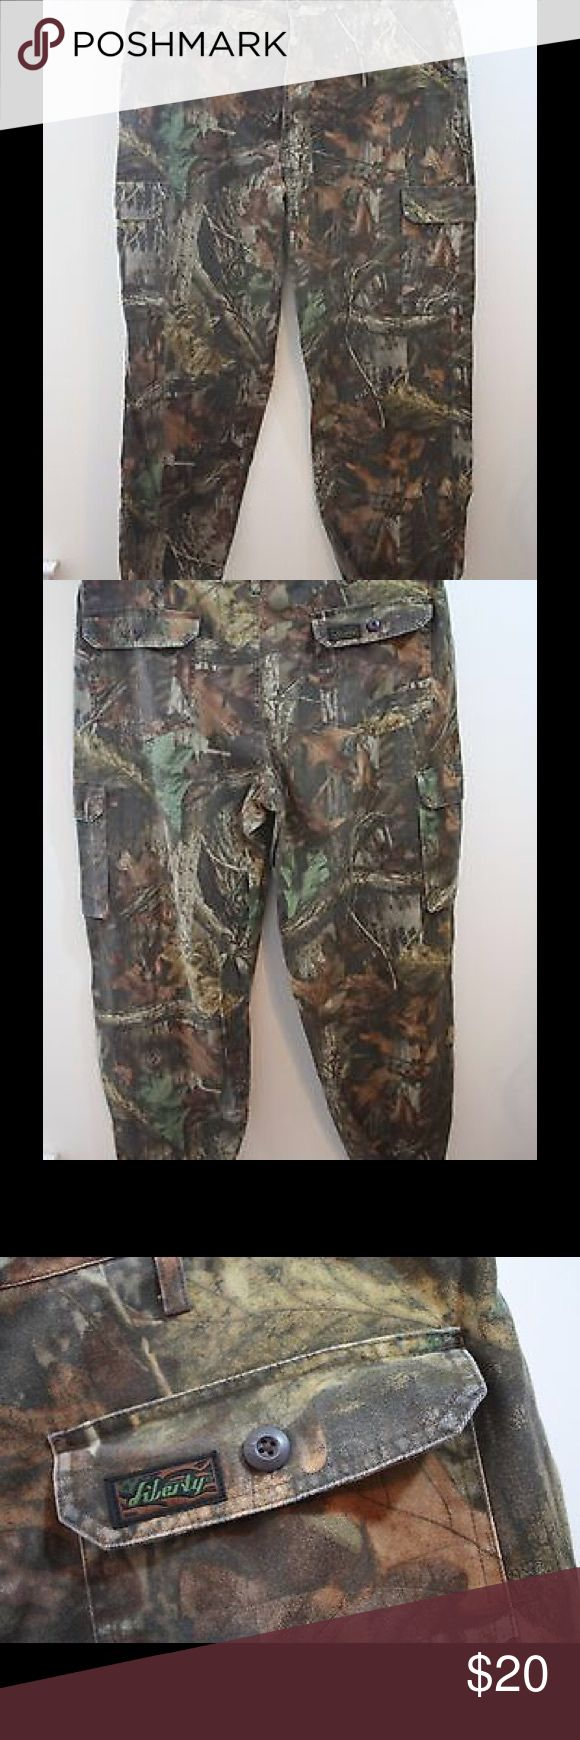 """Vintage RealTree Camo Mens Hunting Pants Size XL Vintage LIBERTY RealTree Camo Men's Hunting Pants Size: XL Reg Condition: Pre-Owned in great condition, see pictures for details Size: X-Large Regular 42-44 (Tag says 46-48 measures 42-44) Description: Vintage RealTree Camo Mens Hunting Pants Size XL Reg.  Has pockets in the legs, sides & back 6-TOTAL Draw tie in the leg. Adjustable side straps, zipper fly  Measurements: Waist: 42 Inseam: 32.5"""" Bottom Leg Width: 1019"""" Contents: Shell 36%…"""